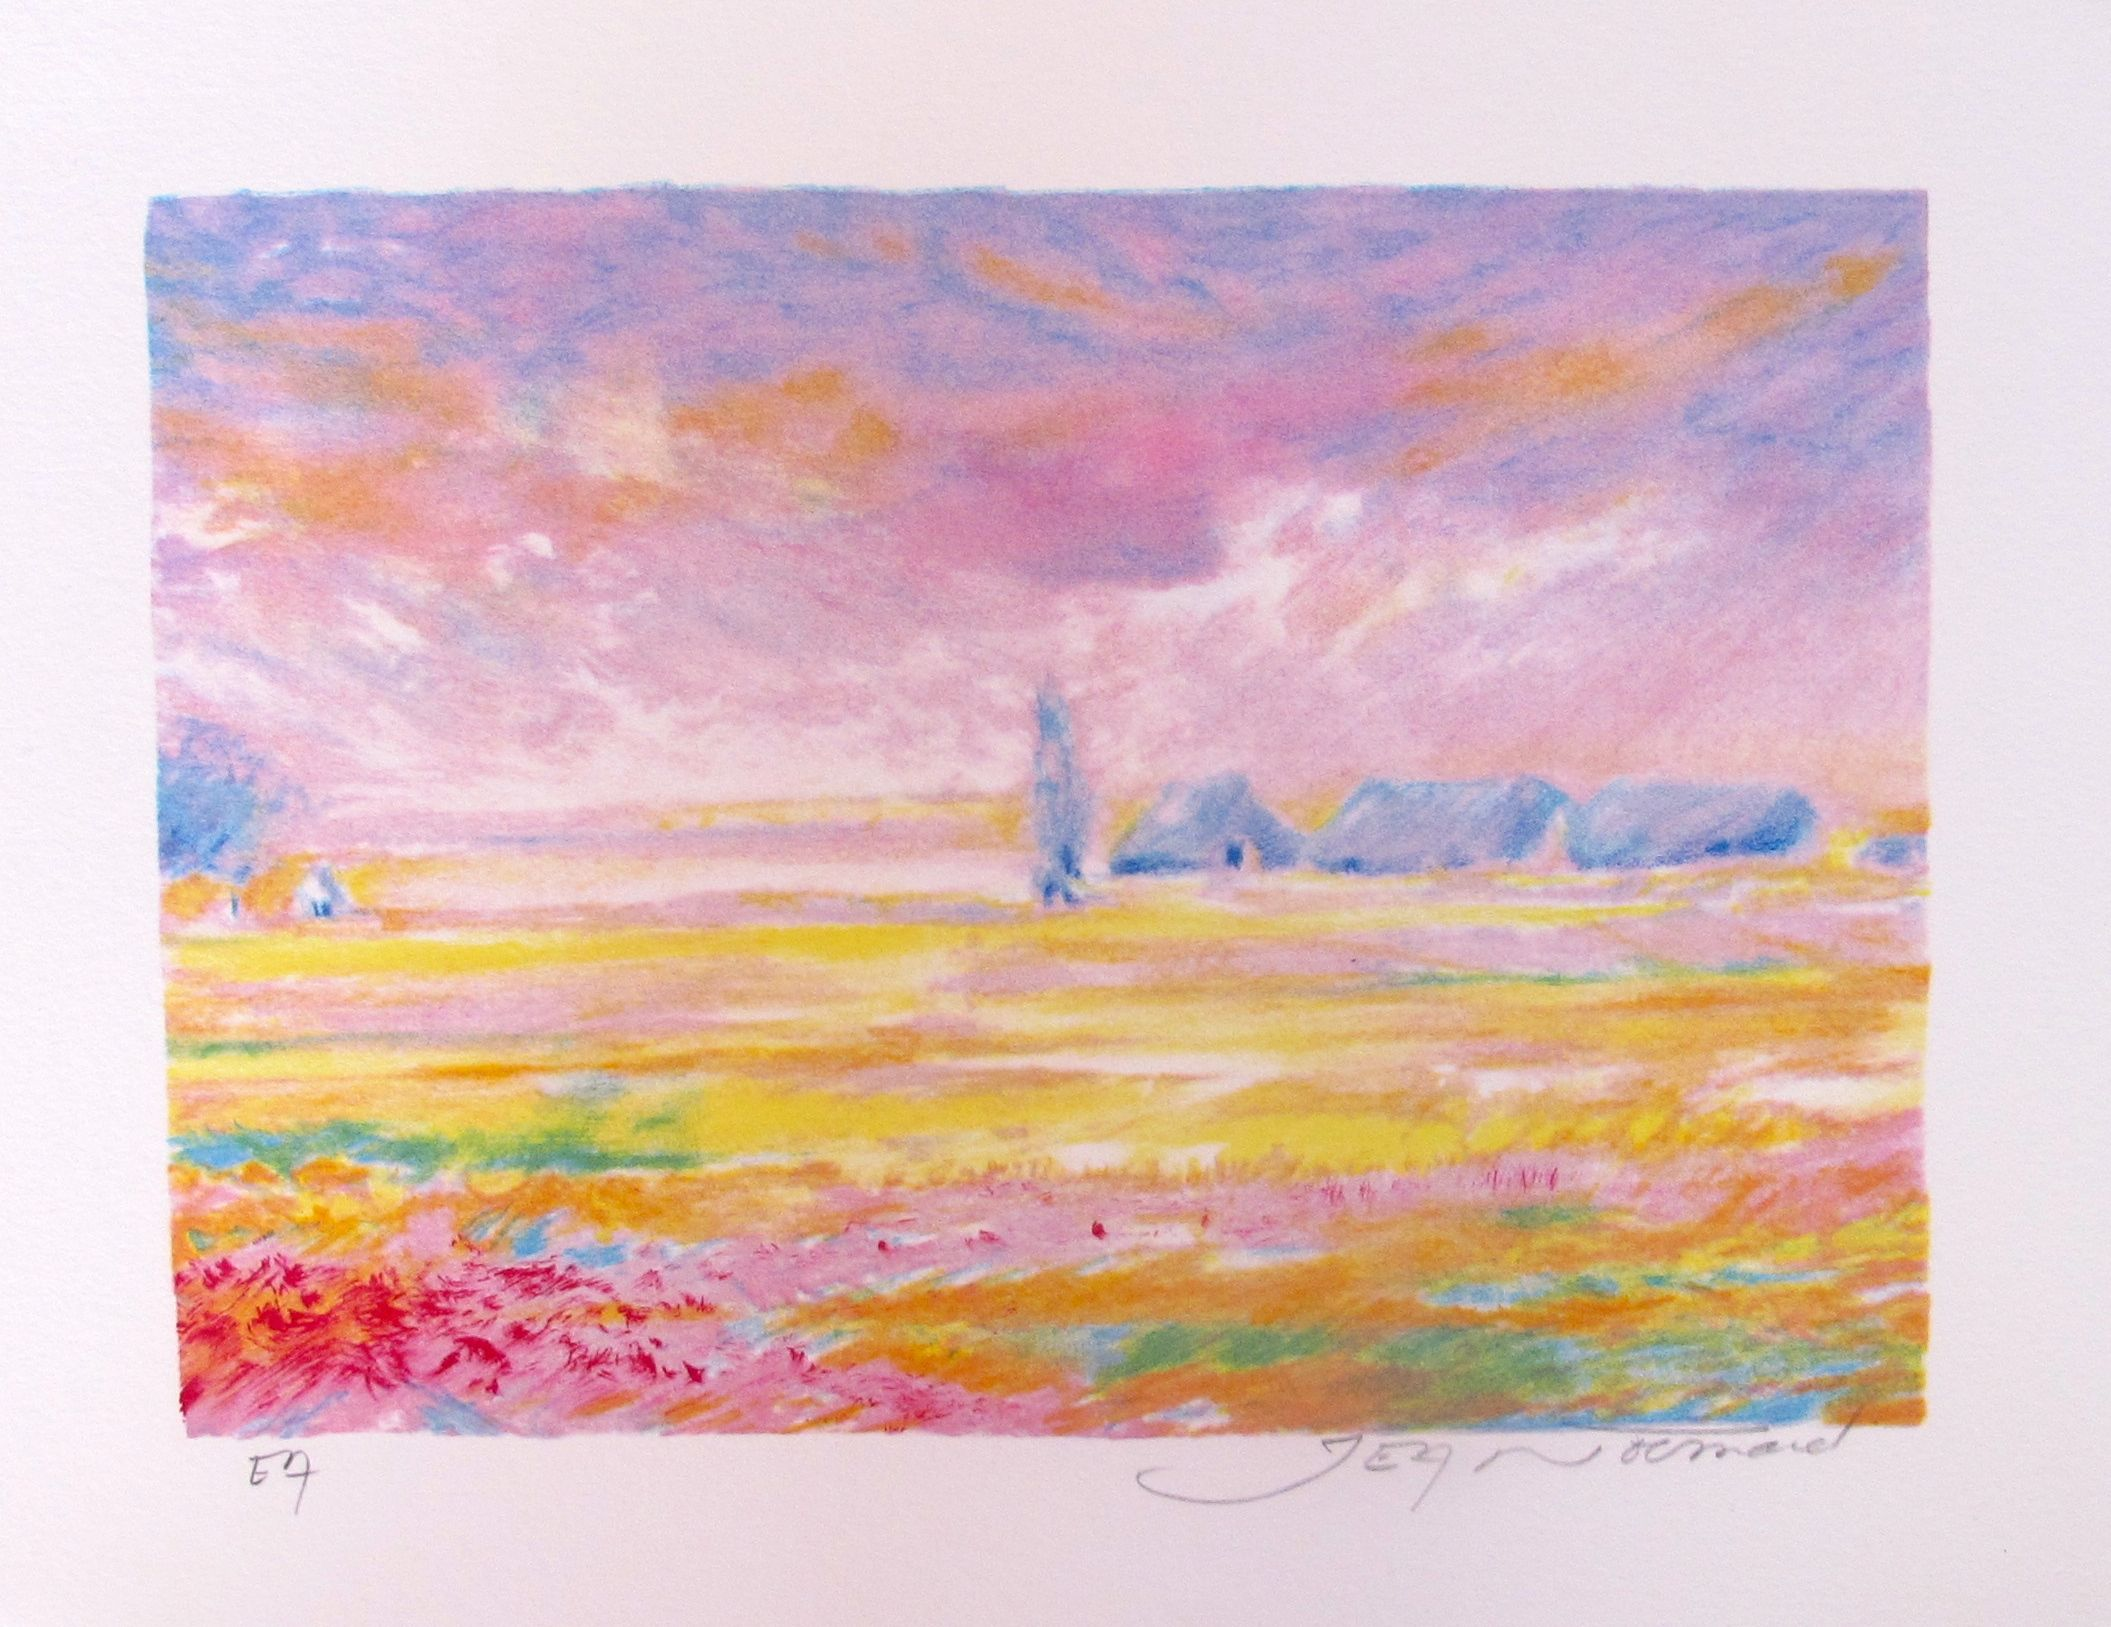 Jean Fernand SOLEIL LEVANT V Hand Signed Limited Edition Lithograph